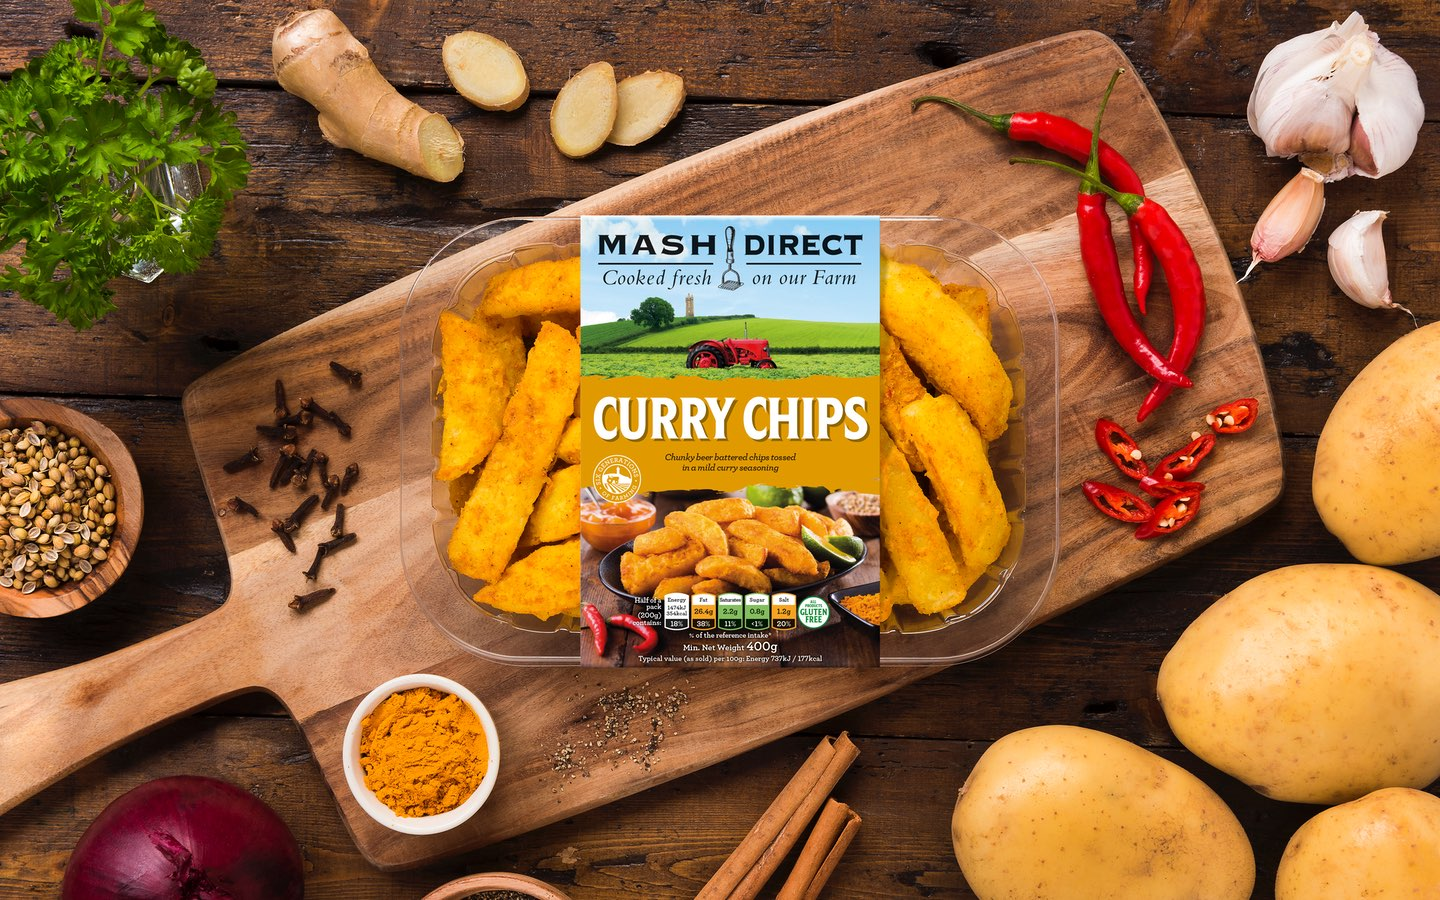 Now releasing: Curry Chips!